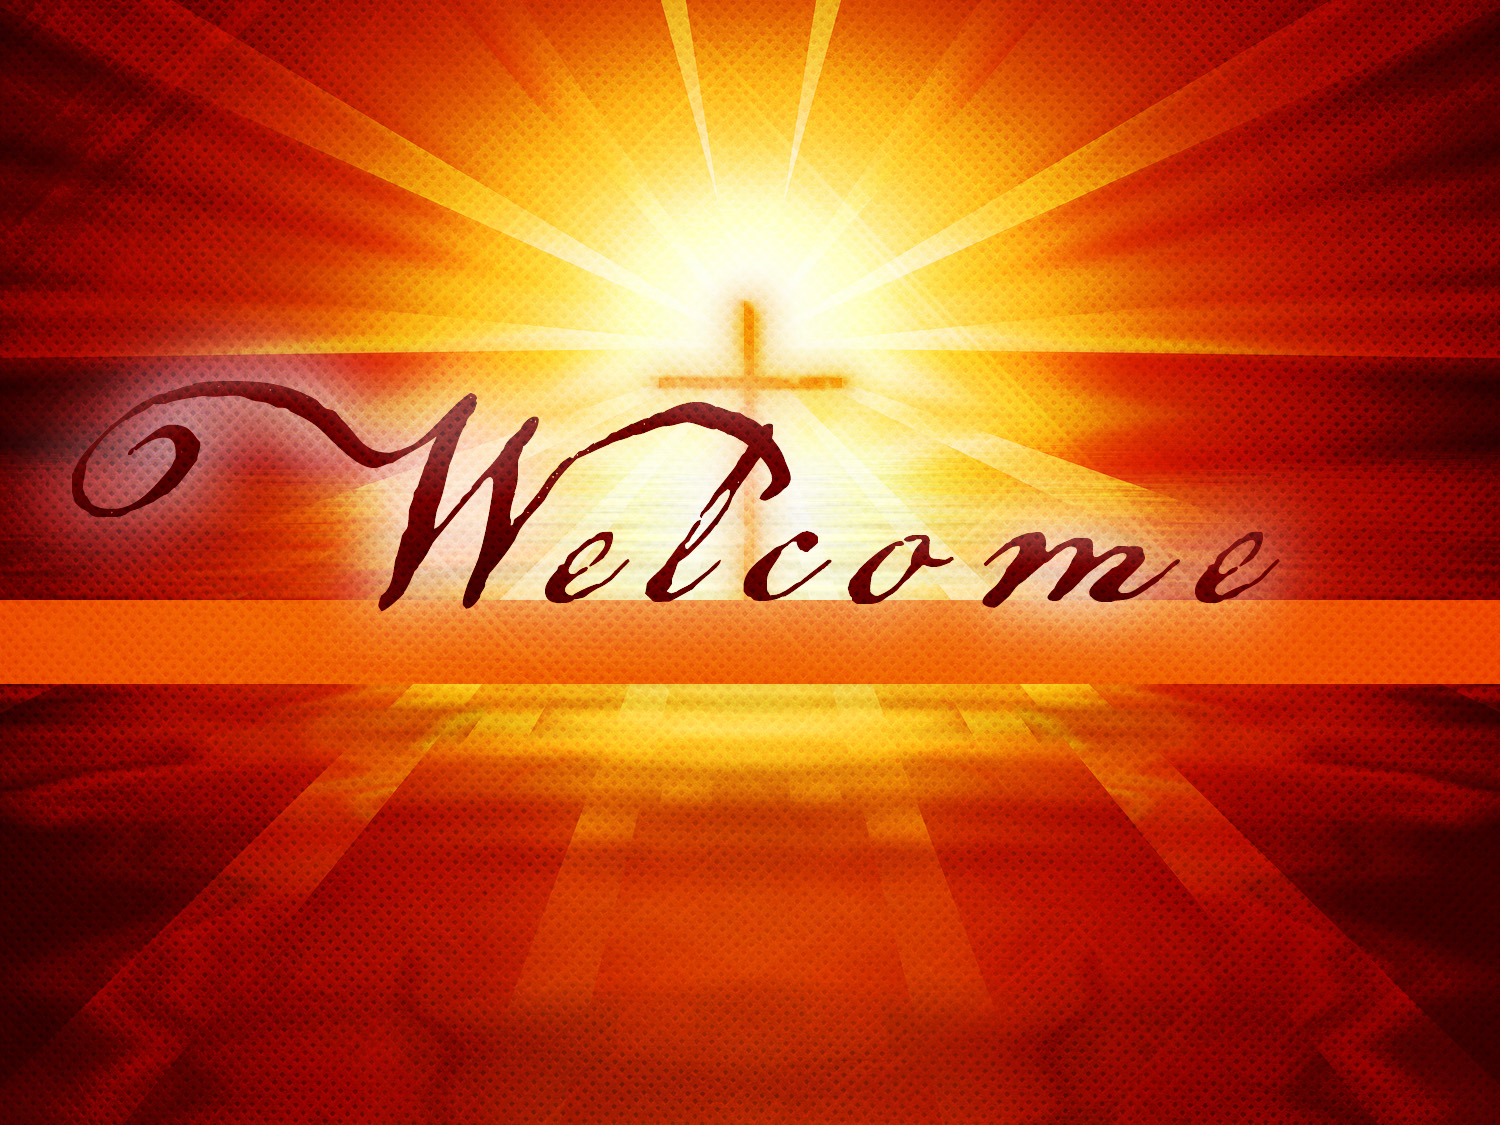 welcome red background Cool Images 1500x1125